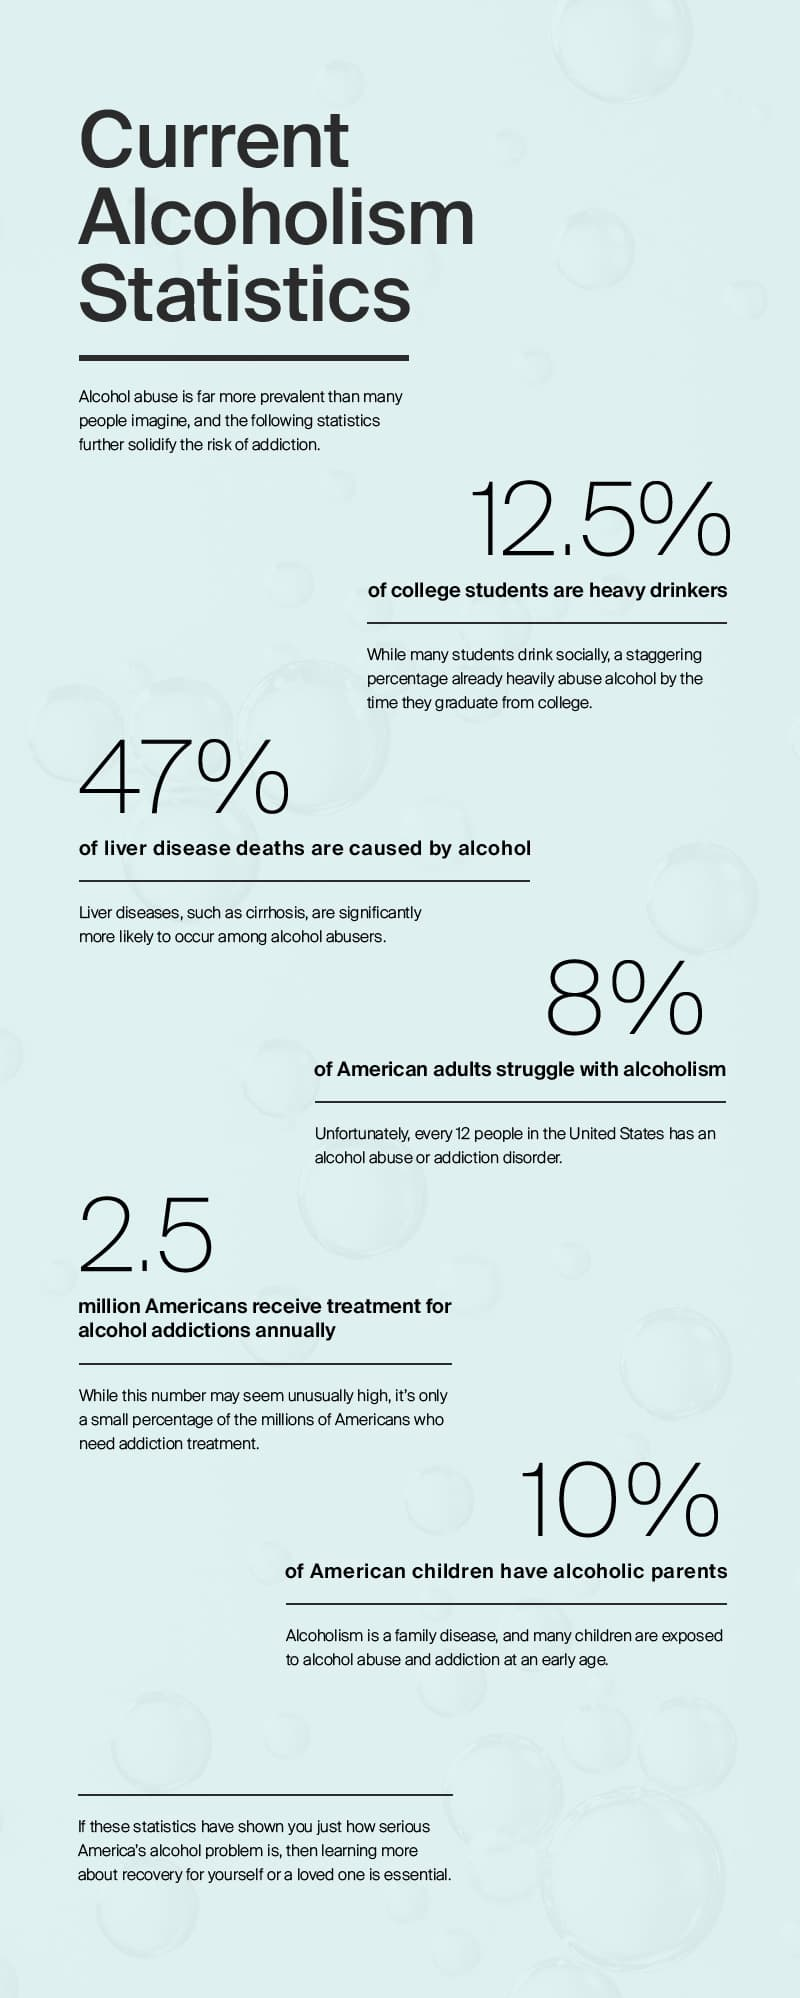 An infographic showing statistics about alcohol addiction in the United States.